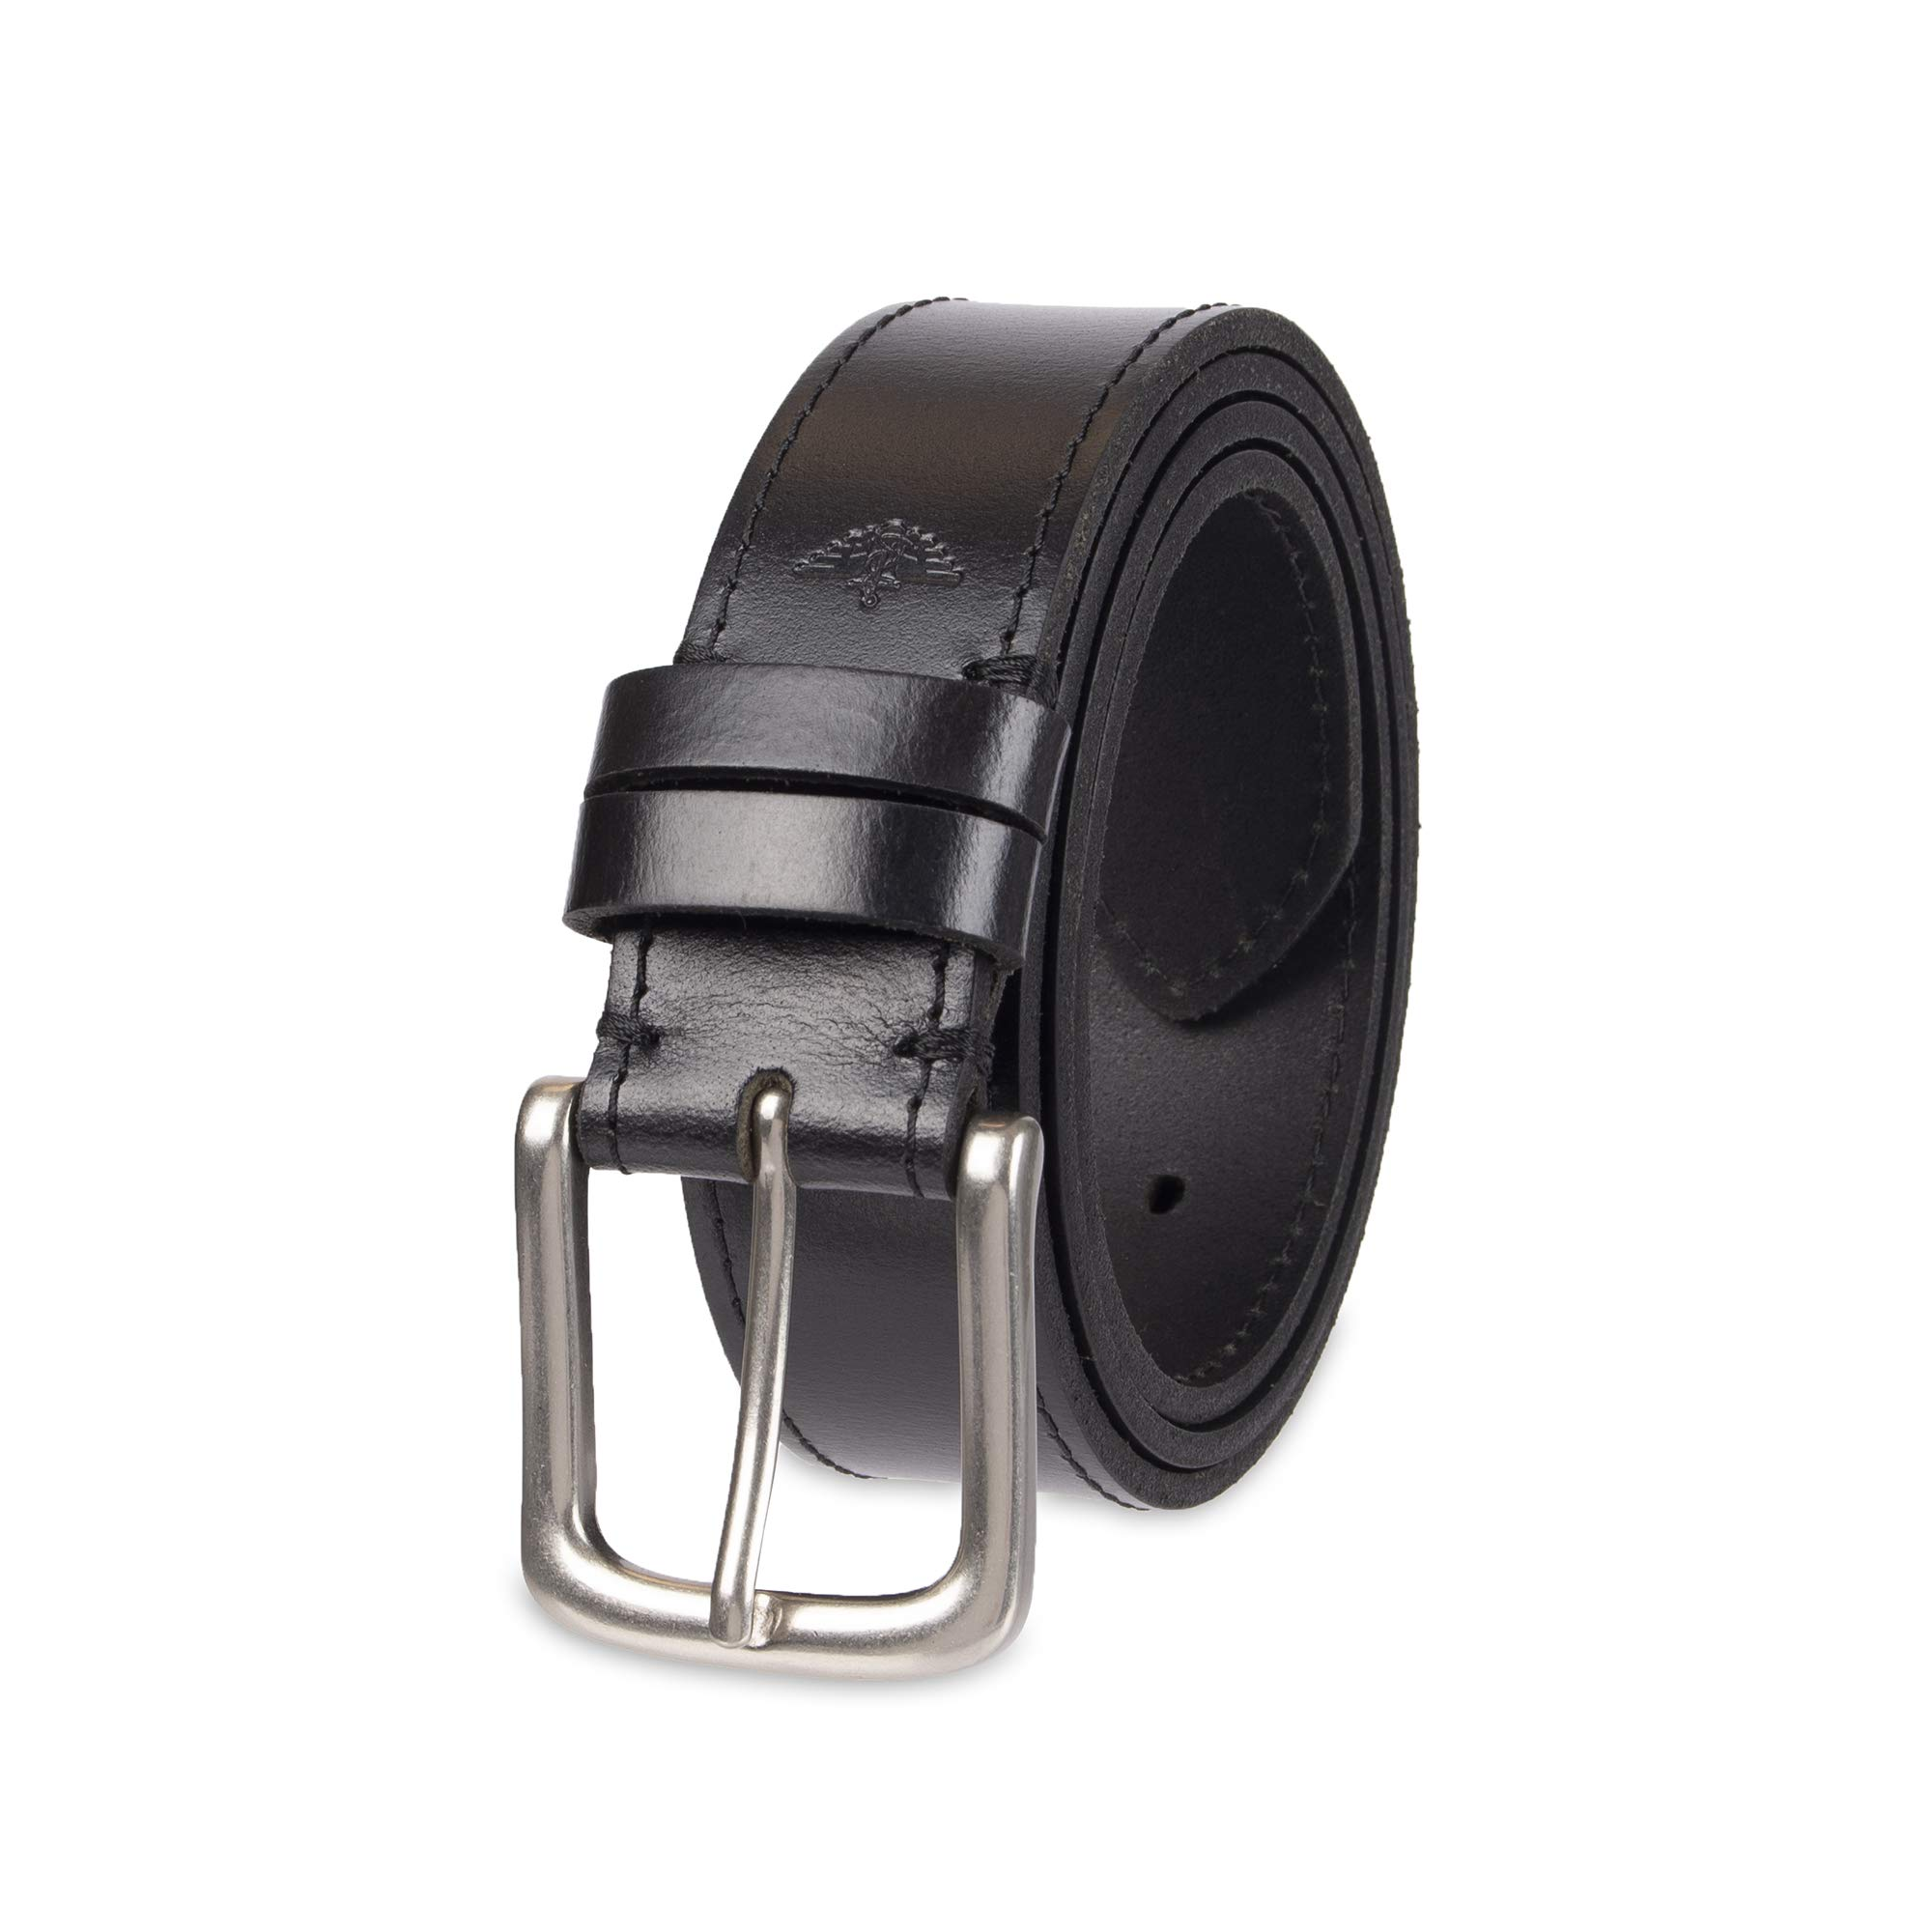 Dockers Men's Casual Leather Belt - 100% Soft Top Grain Genuine Leather Strap with Classic Prong Buckle, Black,3X